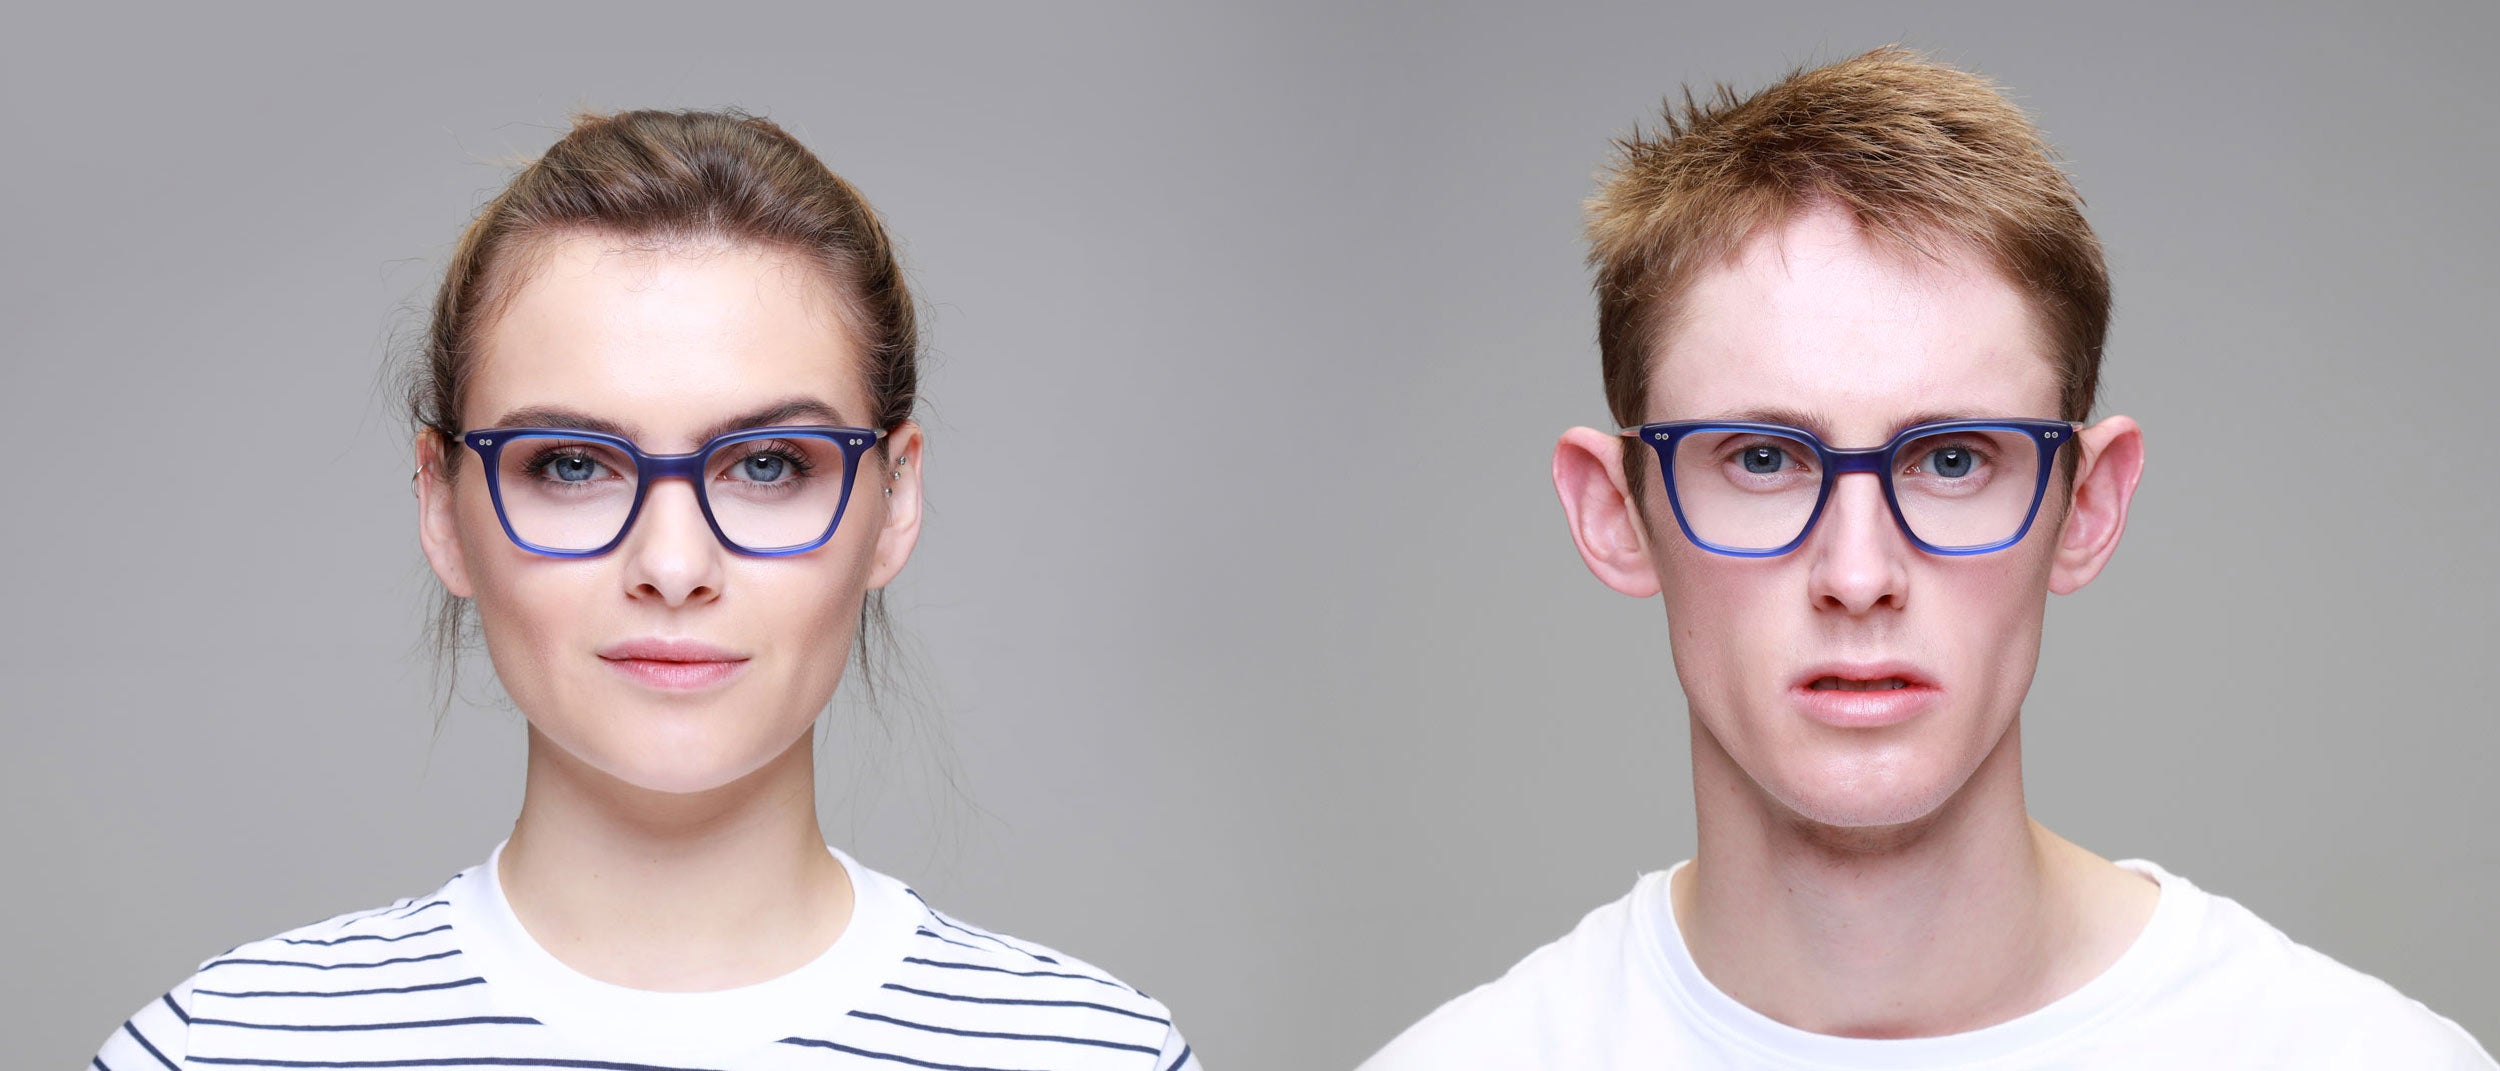 Man-and-Woman-Wearing-Varifocal-small-square-blue-glasses